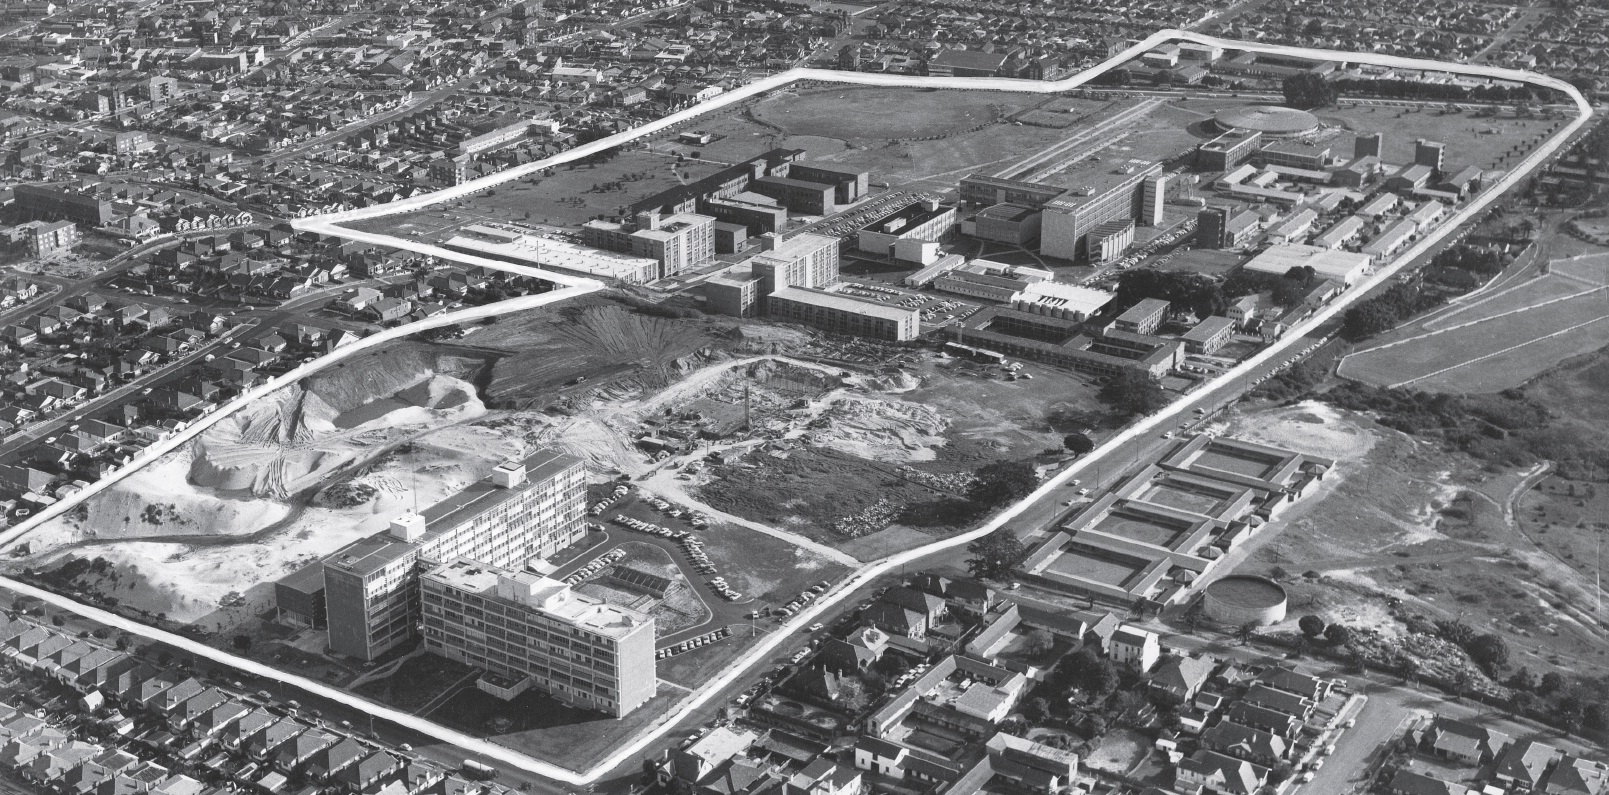 unsw 1962